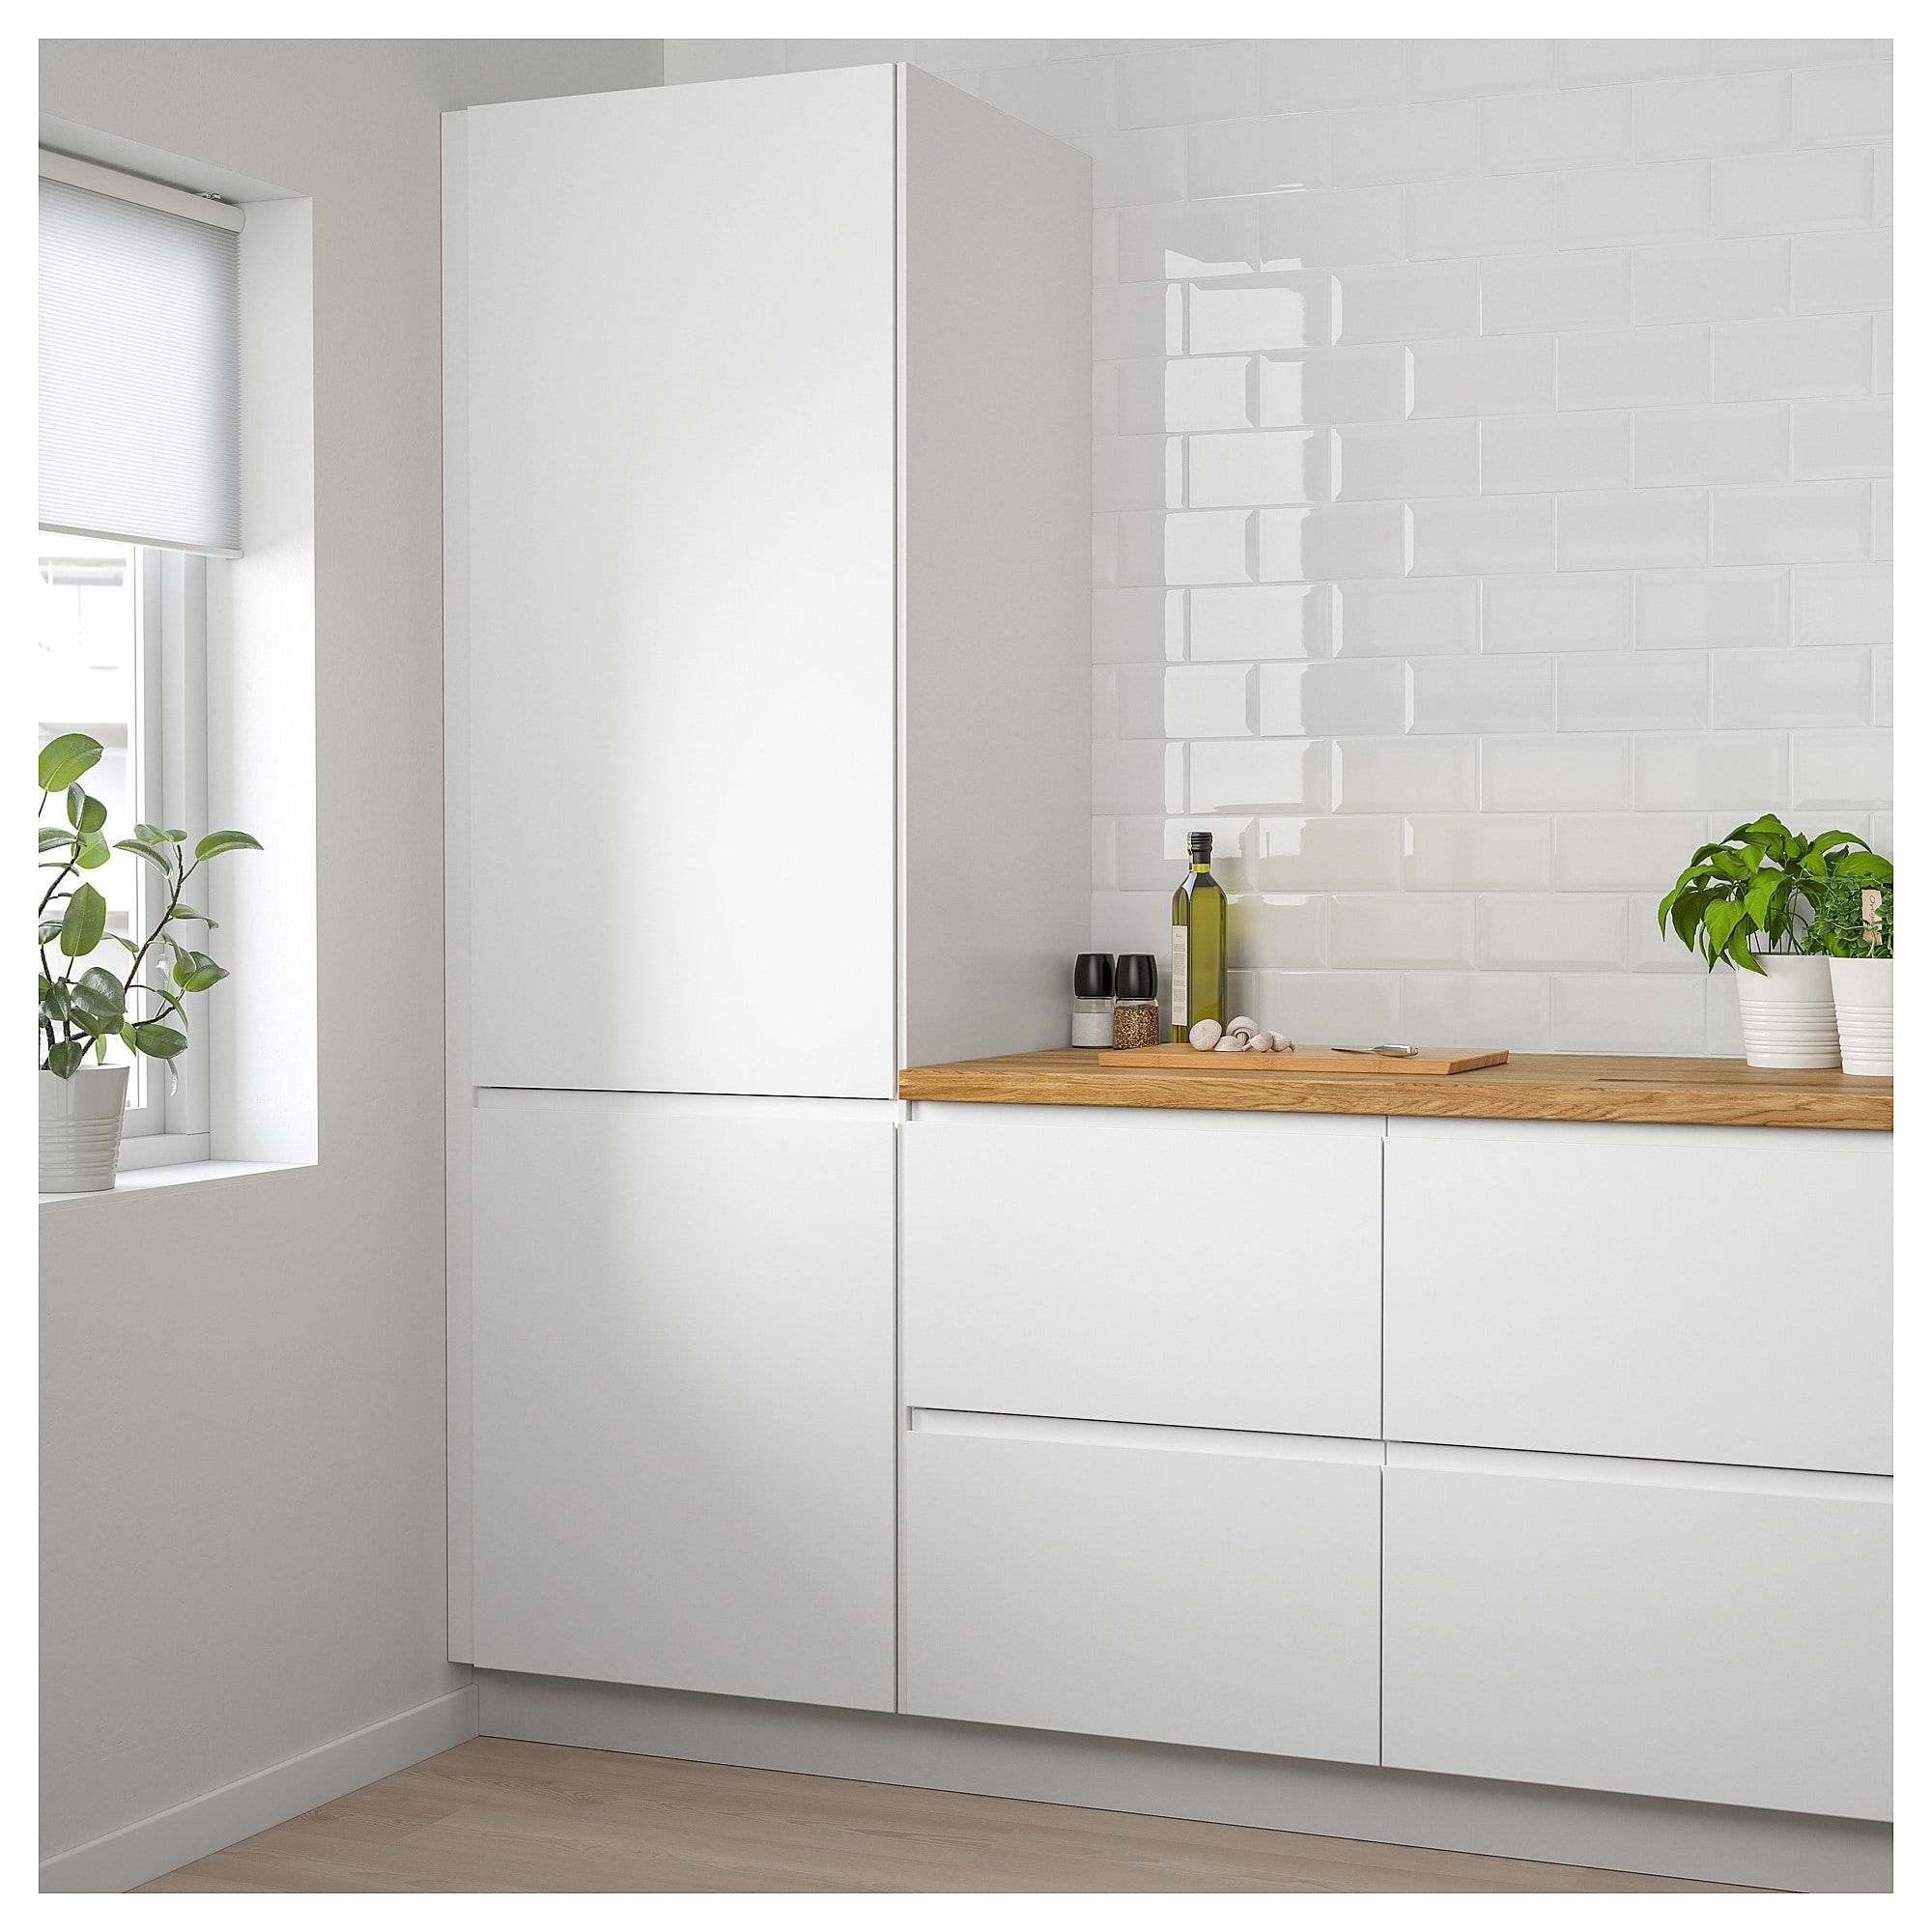 Ikea Kitchen Voxtorp Reviews